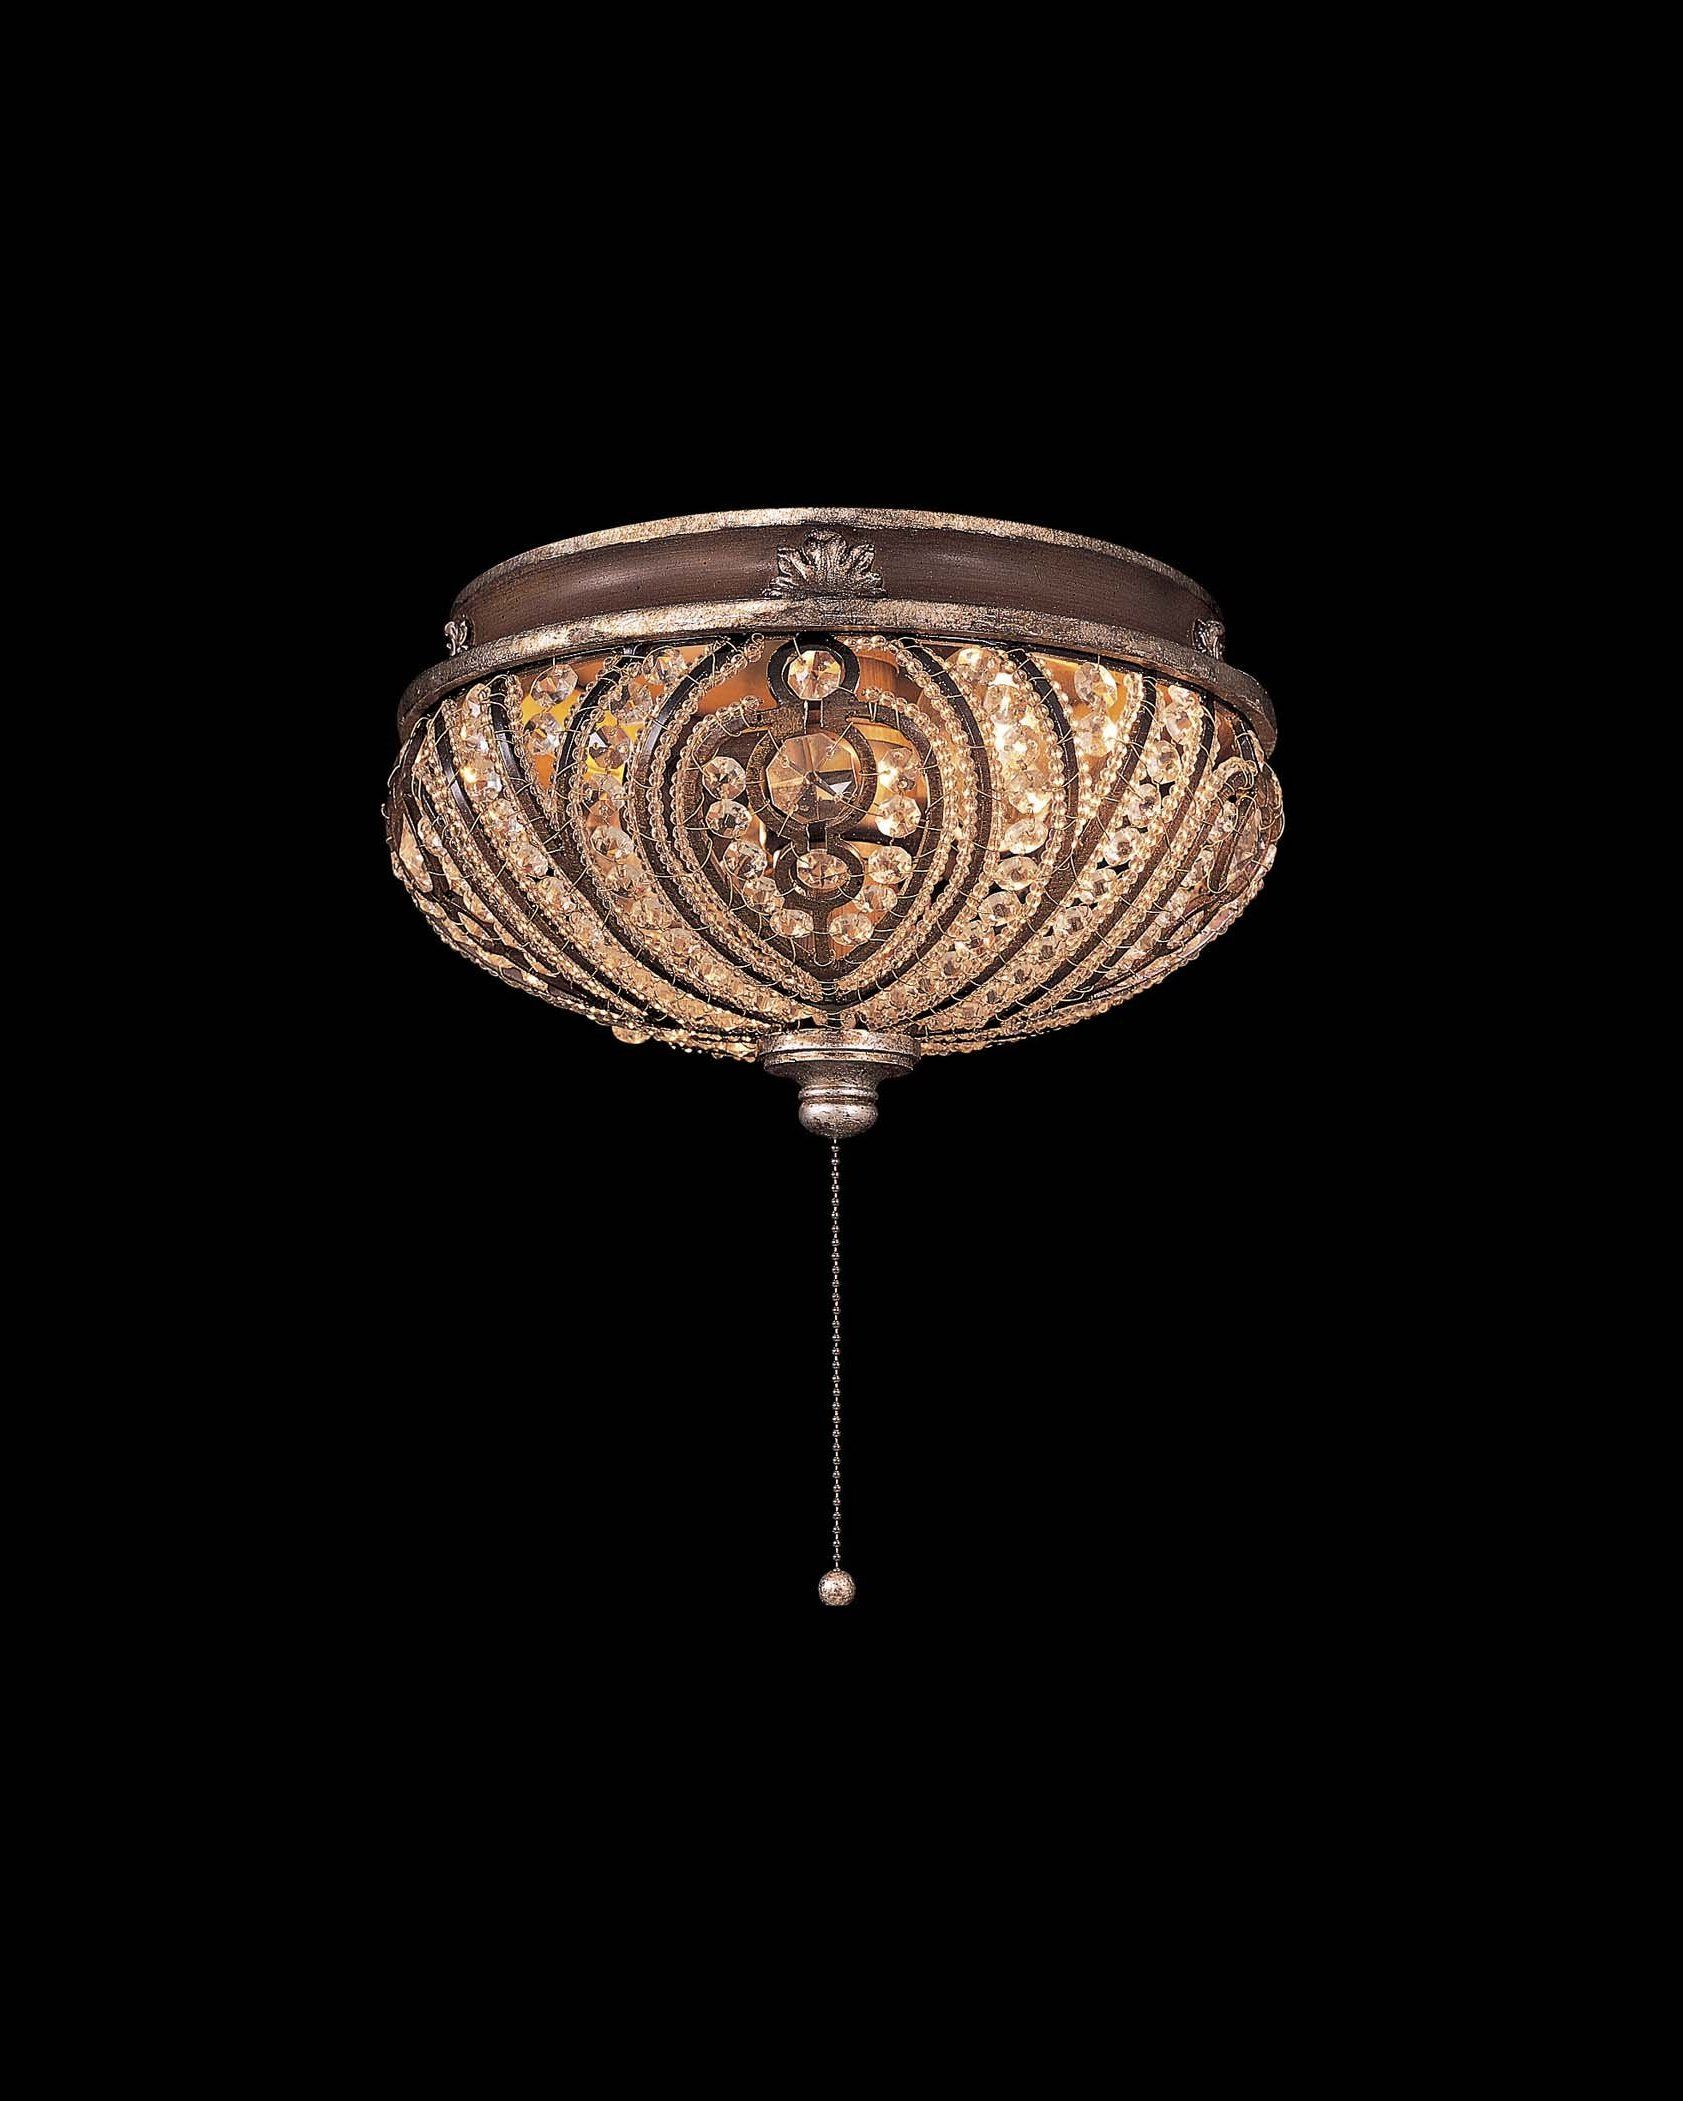 Pull Chain Ceiling Light Fixture Beauteous Portrayal Of Pull Chain Ceiling Light Fixture For Interesting Decorating Inspiration